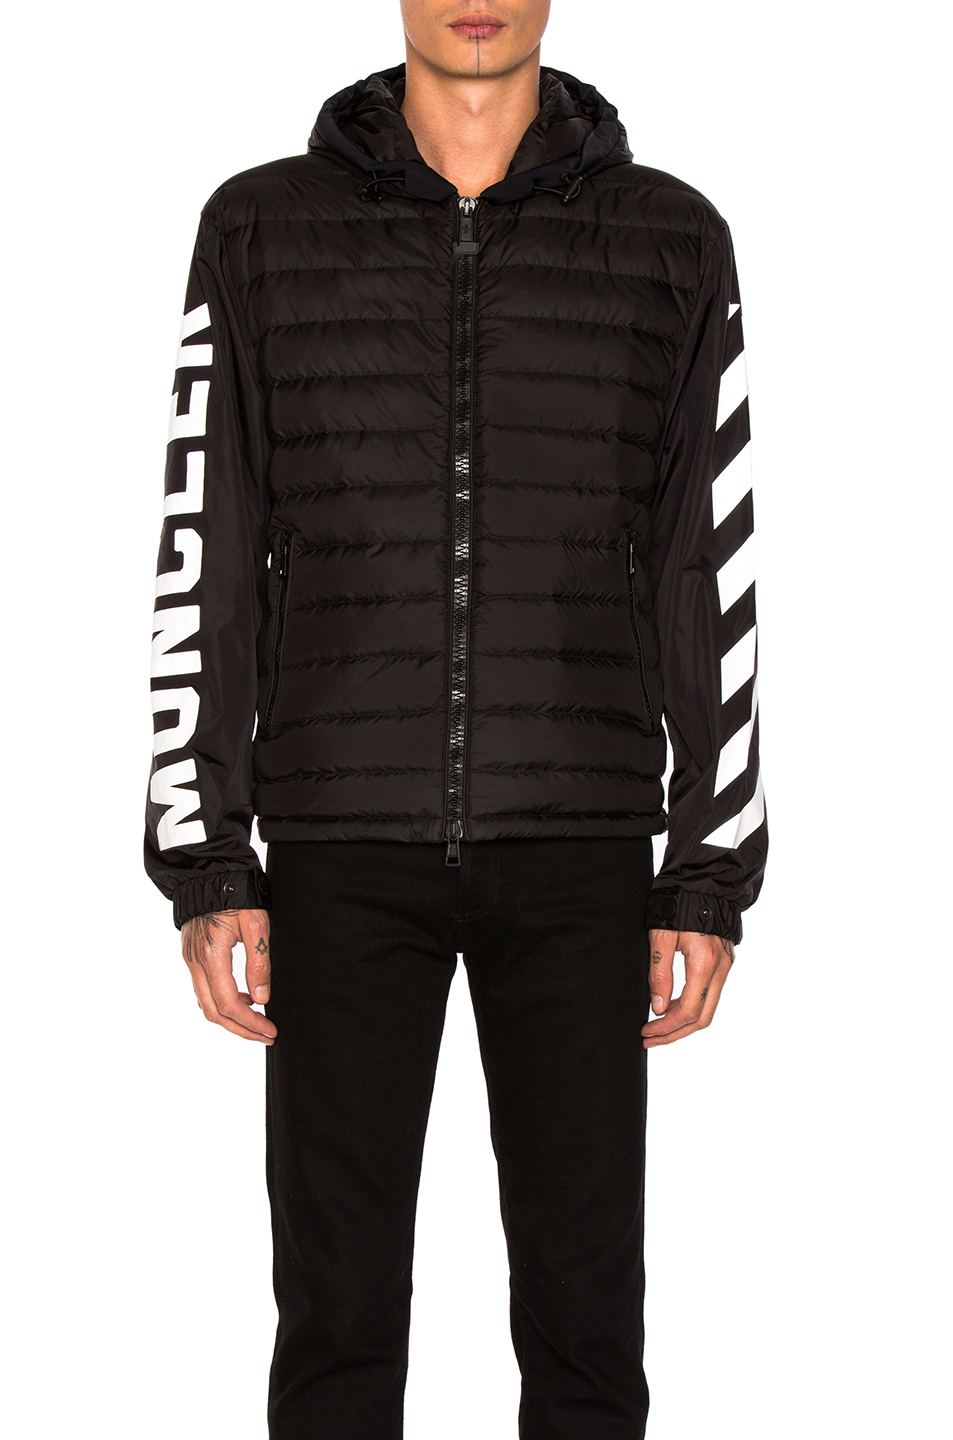 Moncler x Off White Jacket in Black